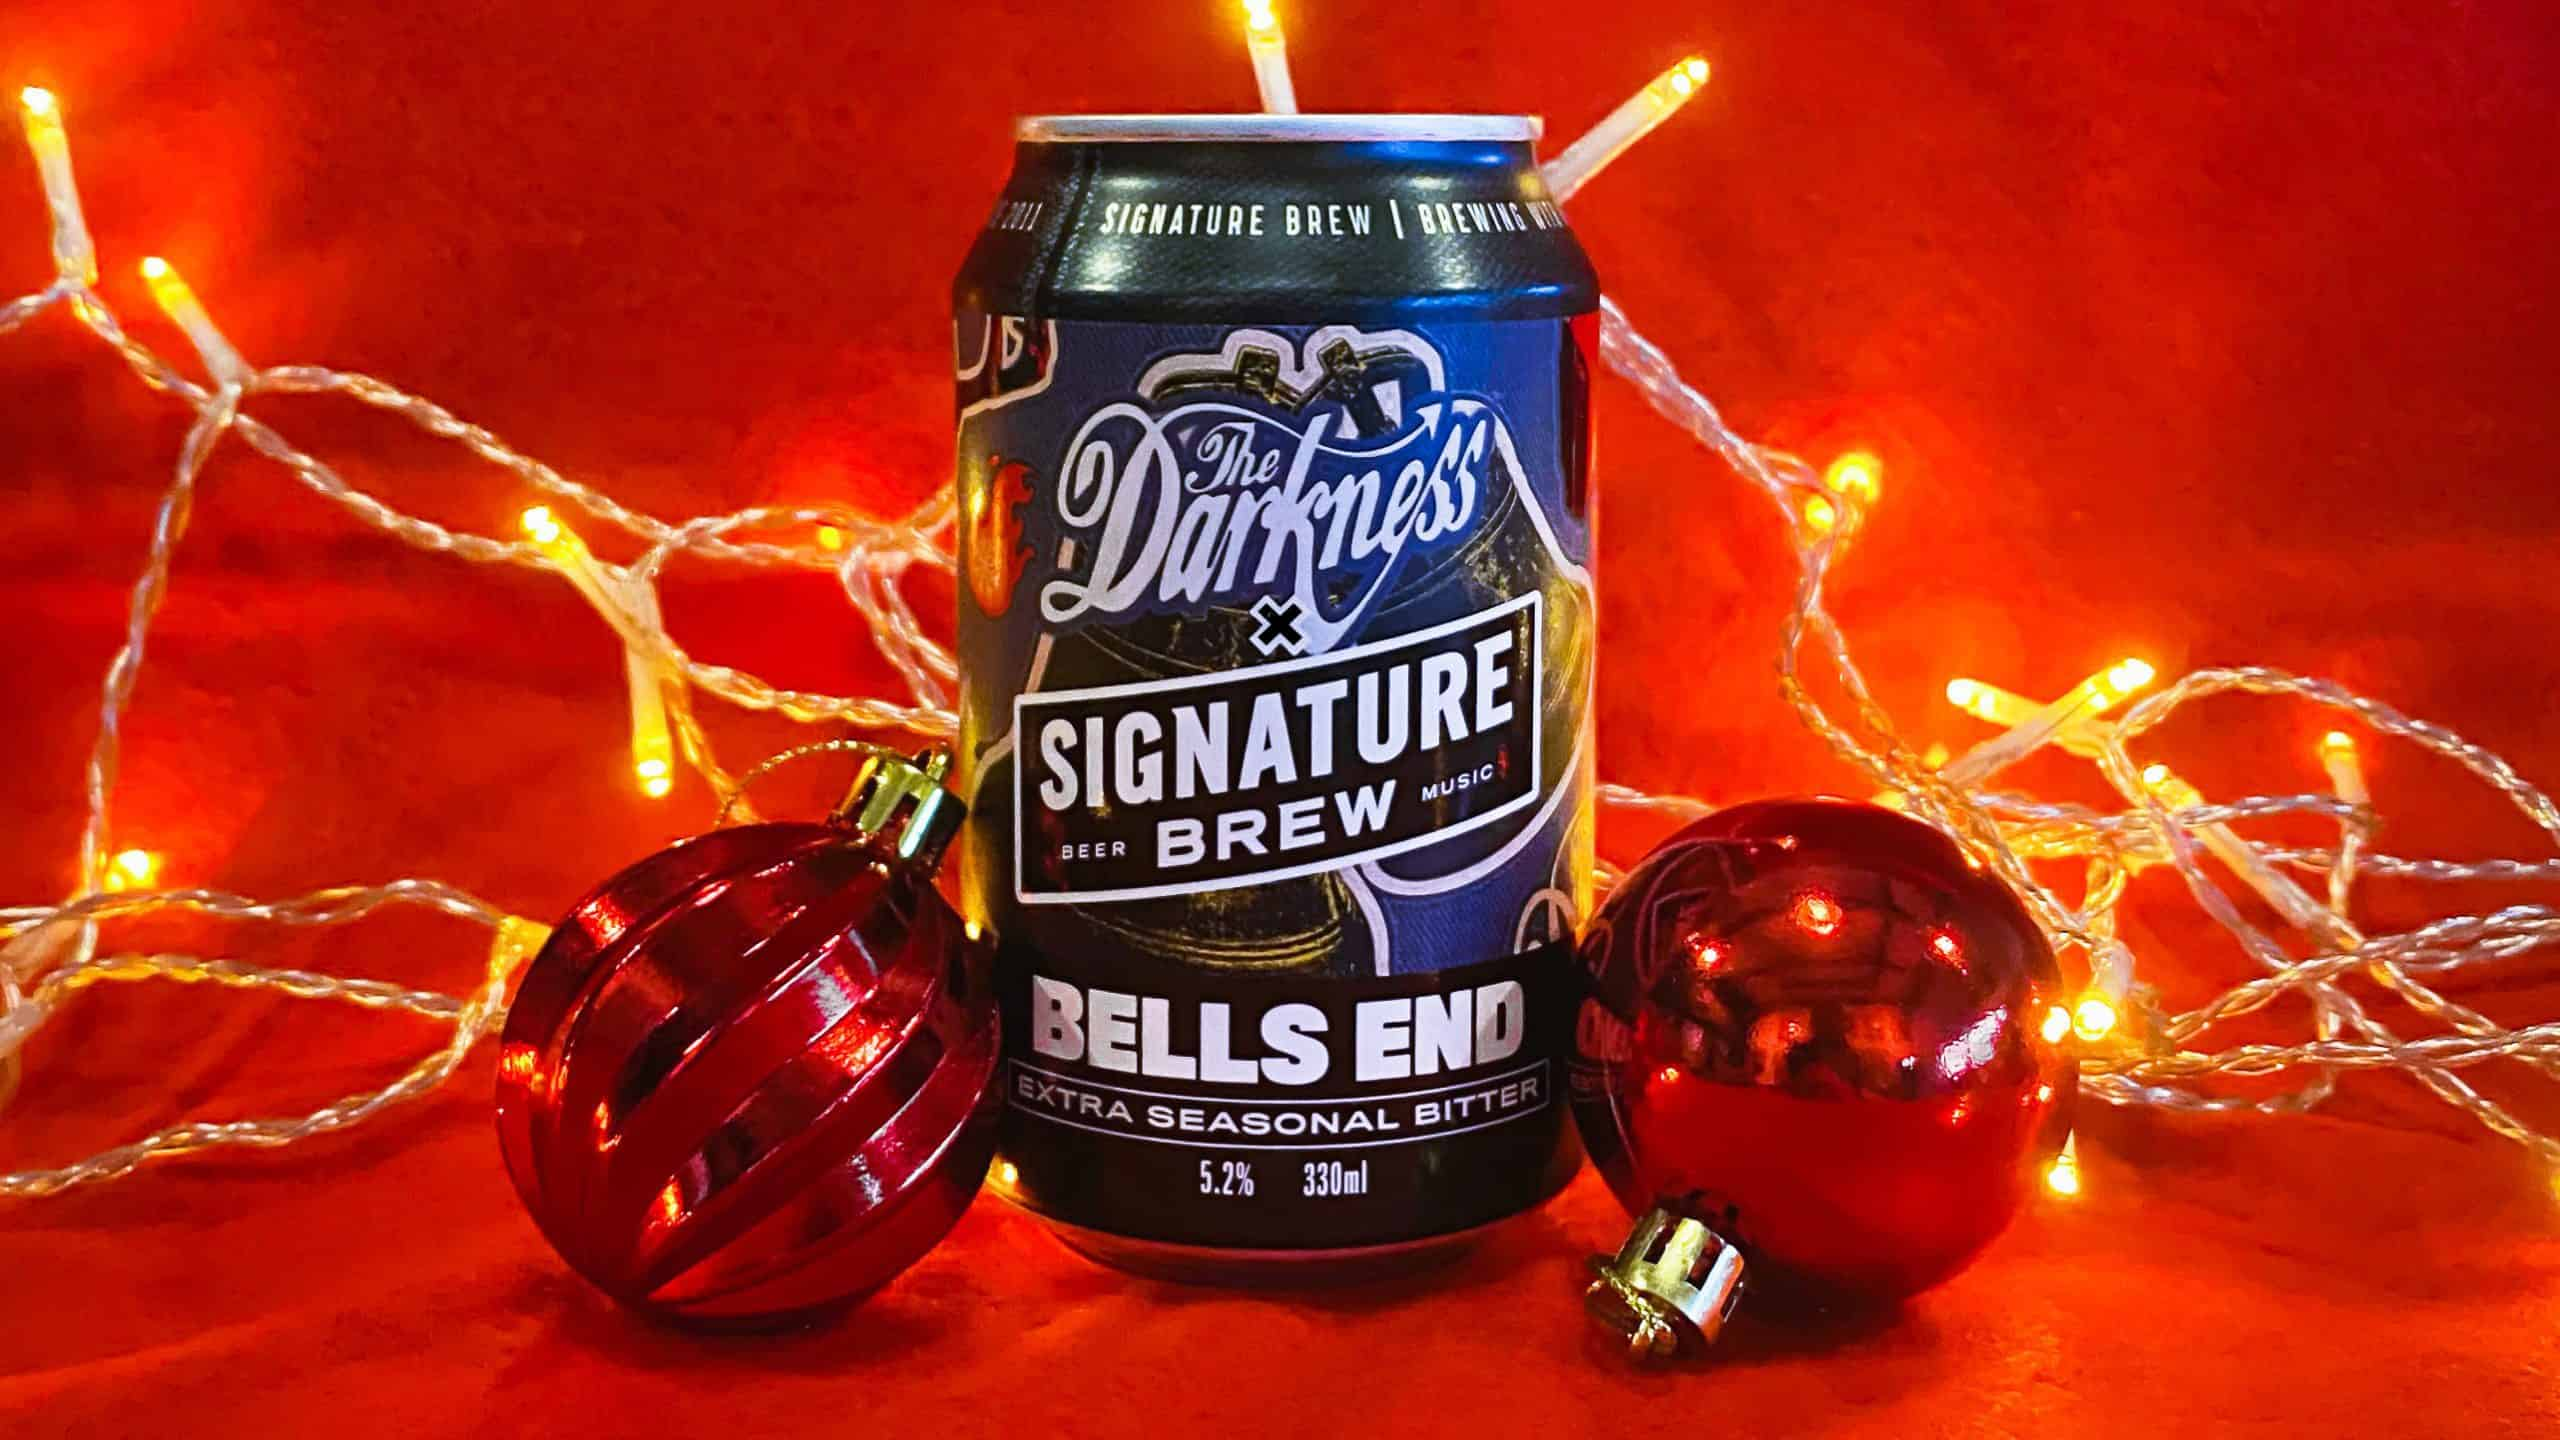 Bells End: An Extra Seasonal Bitter From Signature Brew And The Darkness photo